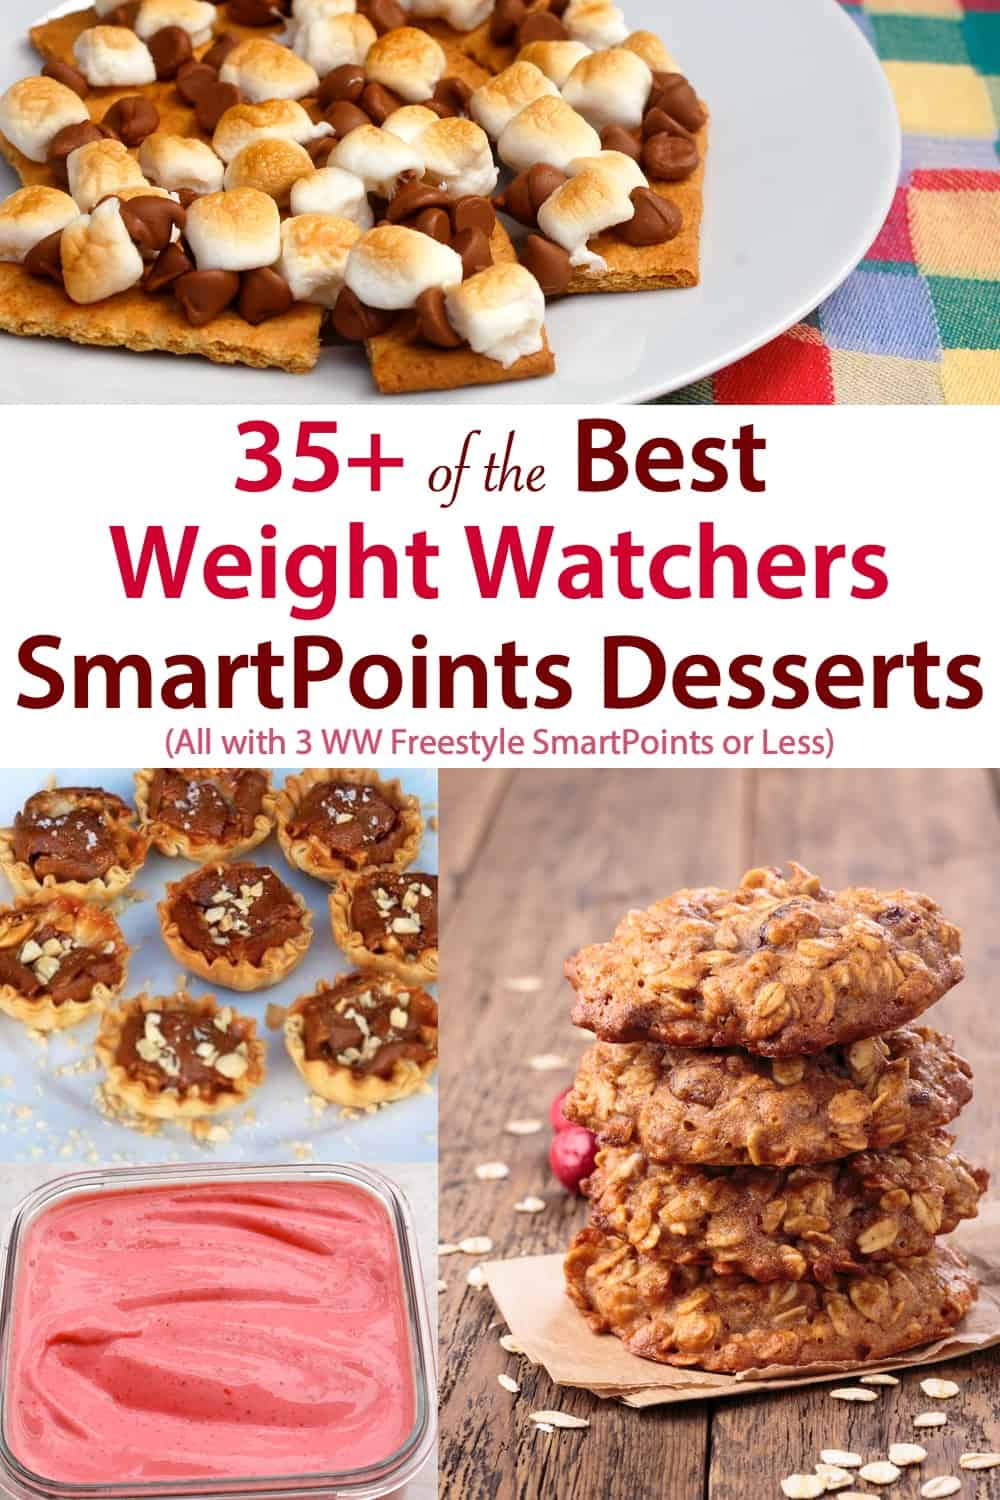 Favorite Weight Watchers Freestyle Sweet Treats and Dessert with 3 Freestyle SmartPoints or Less! #wwfreestyledesserts #dessert #ww #wwfamily #weightwatchers #3smartpointsorless